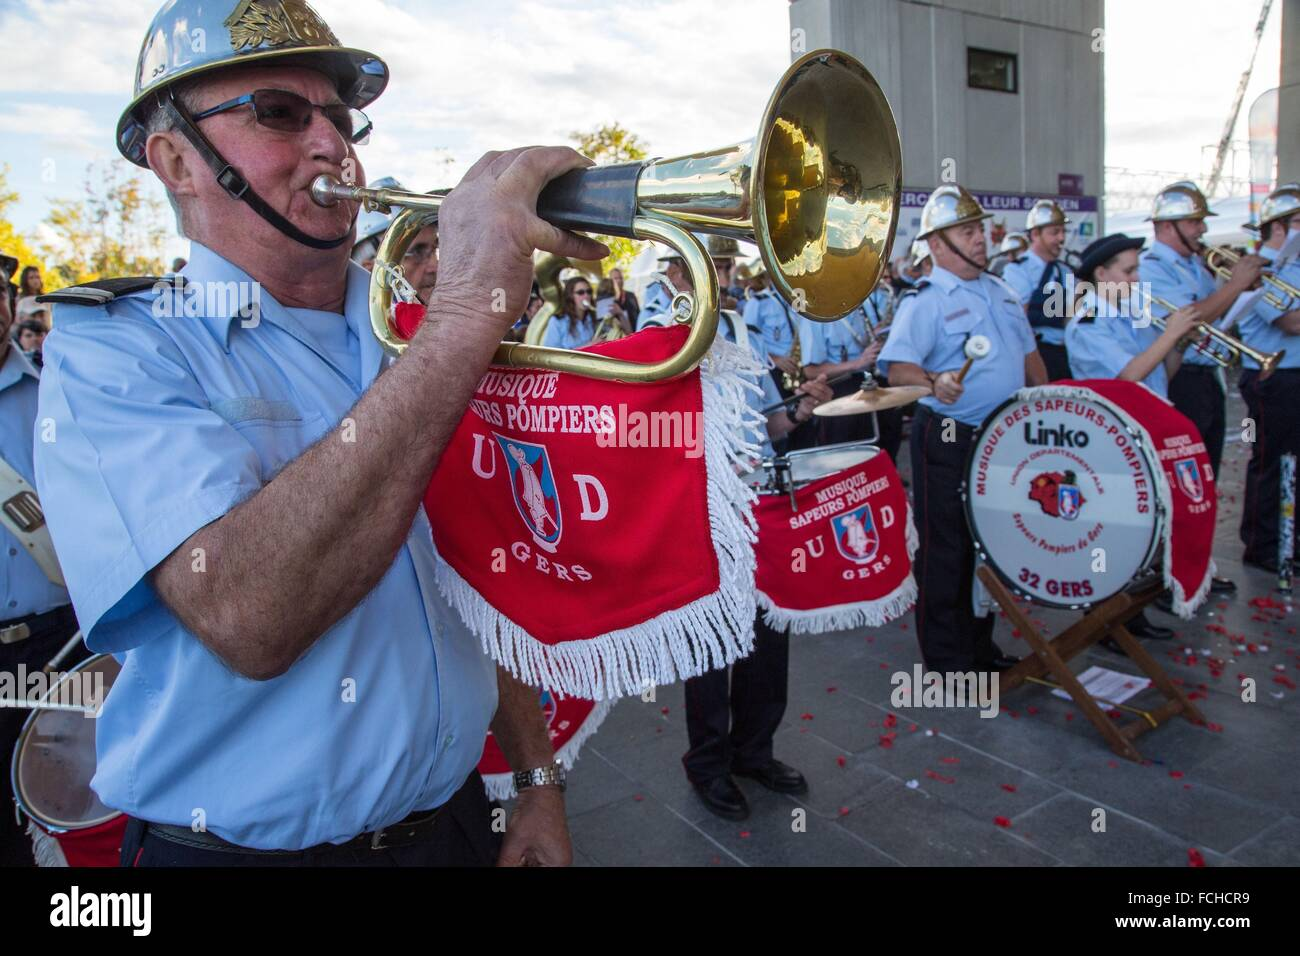 MUSIC AT THE GERS FIRE DEPARTMENT - Stock Image